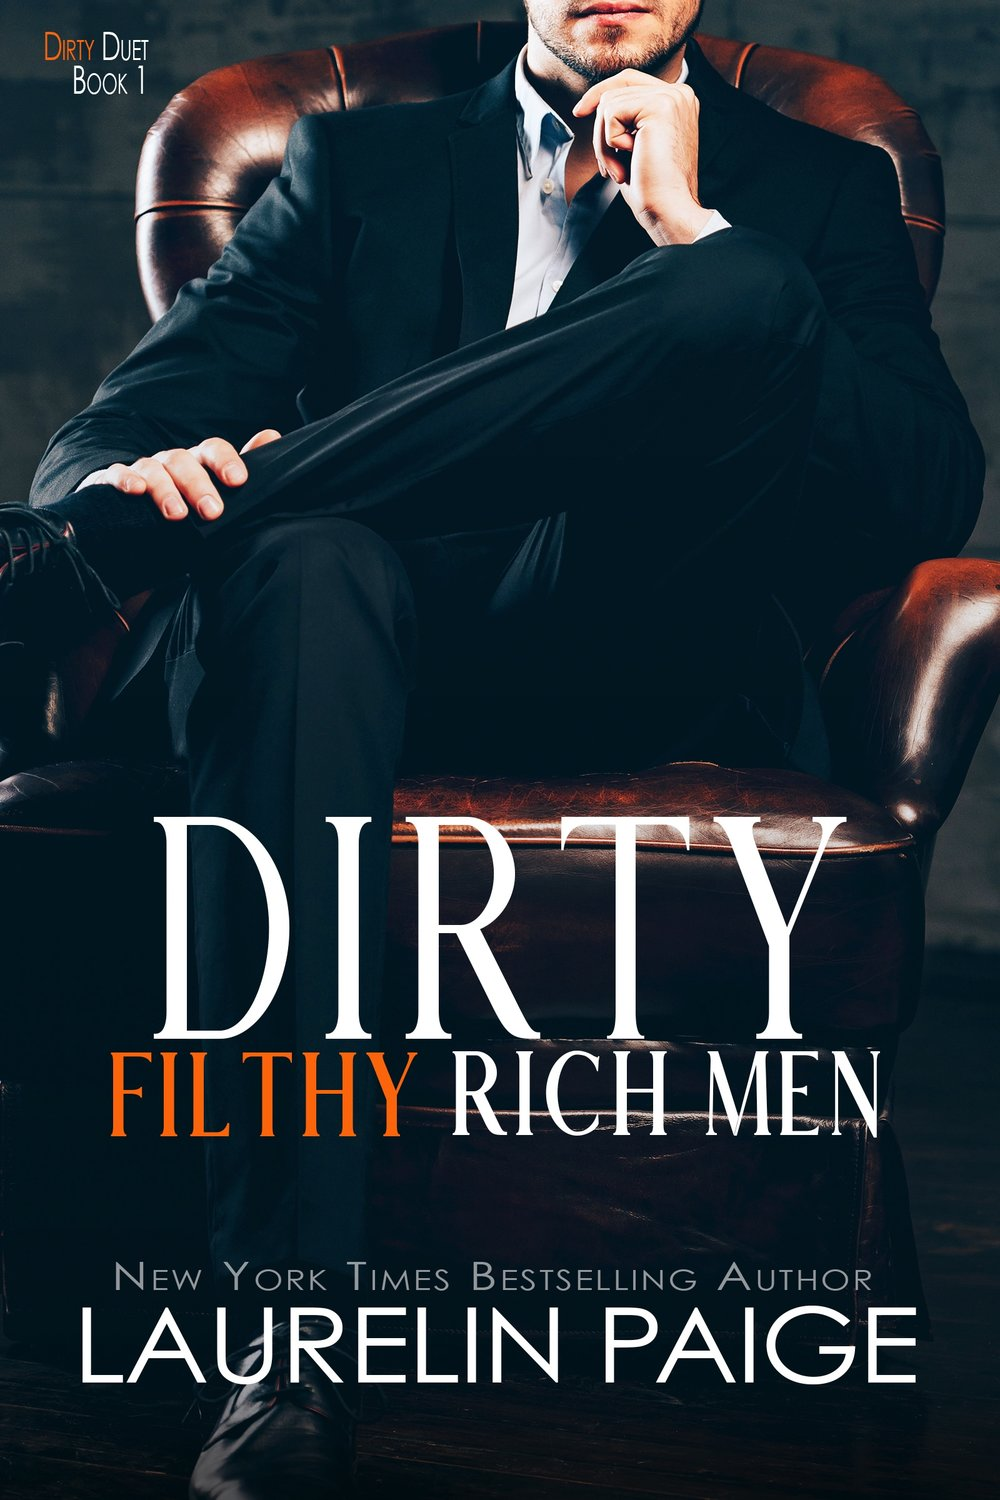 Dirty-Filthy-Rich-Men-Kindle.jpg